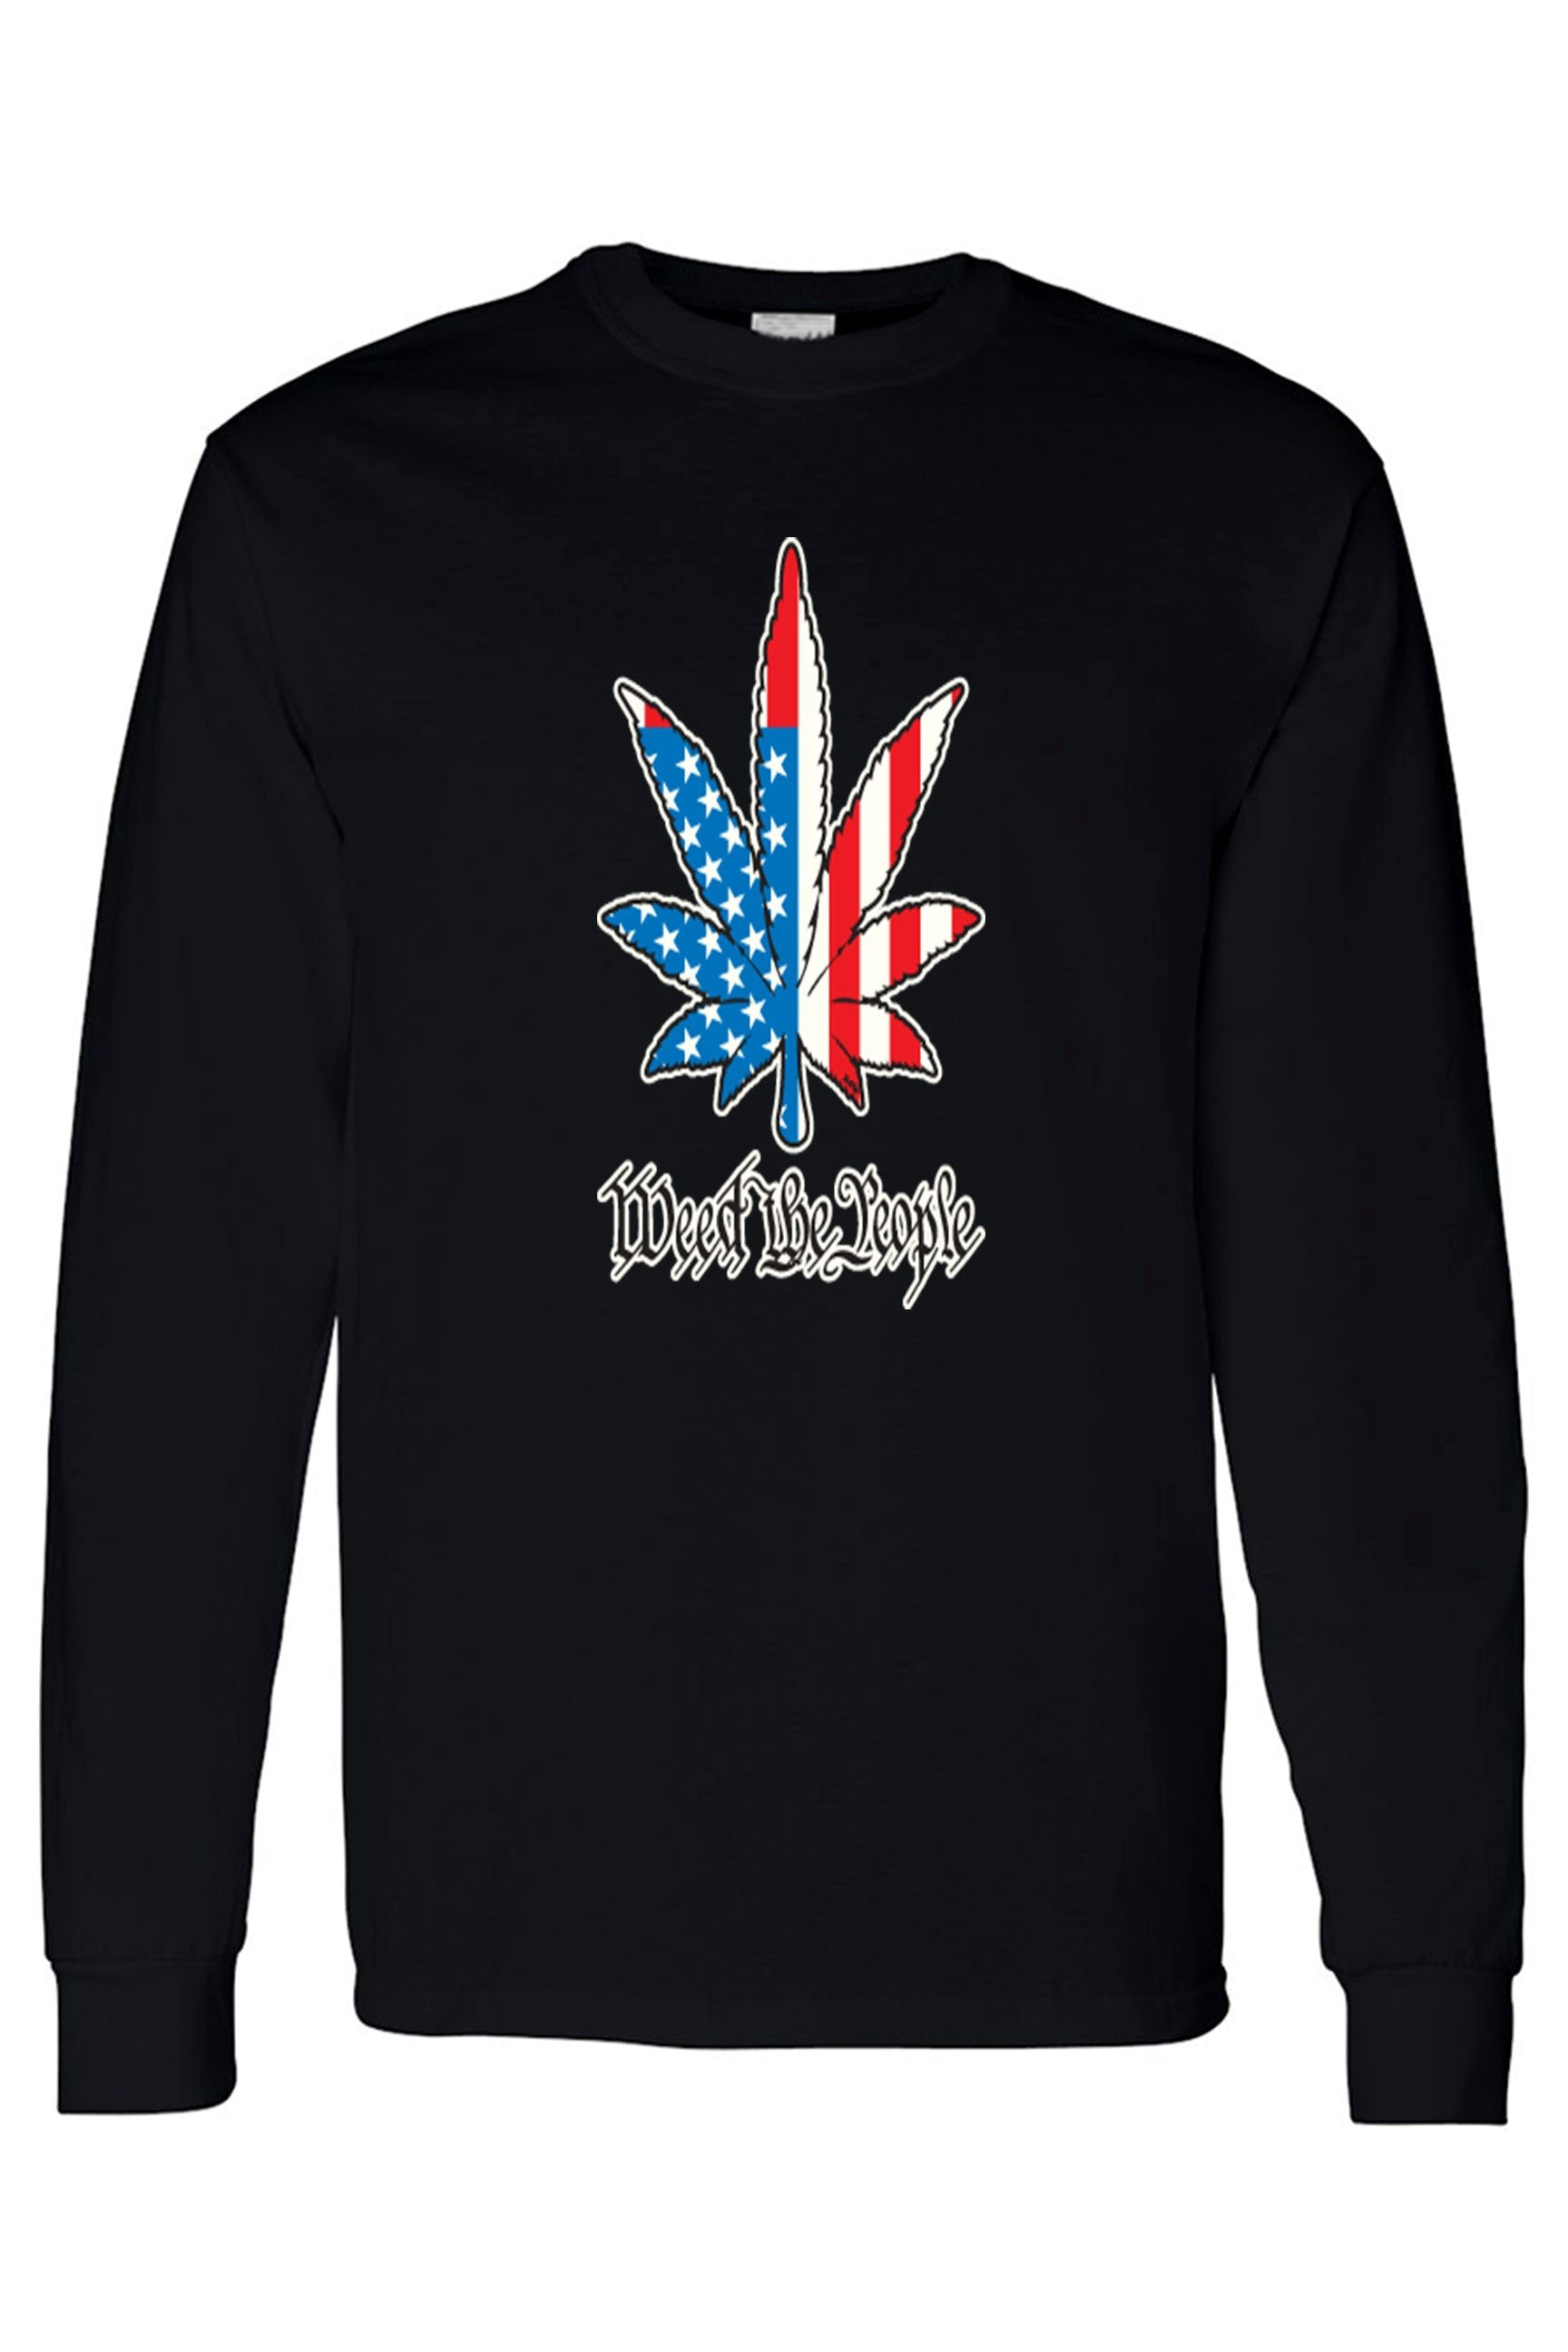 Weed The People Long Sleeve Shirt. Ships From Usa - Black / 3Xl - Shirt